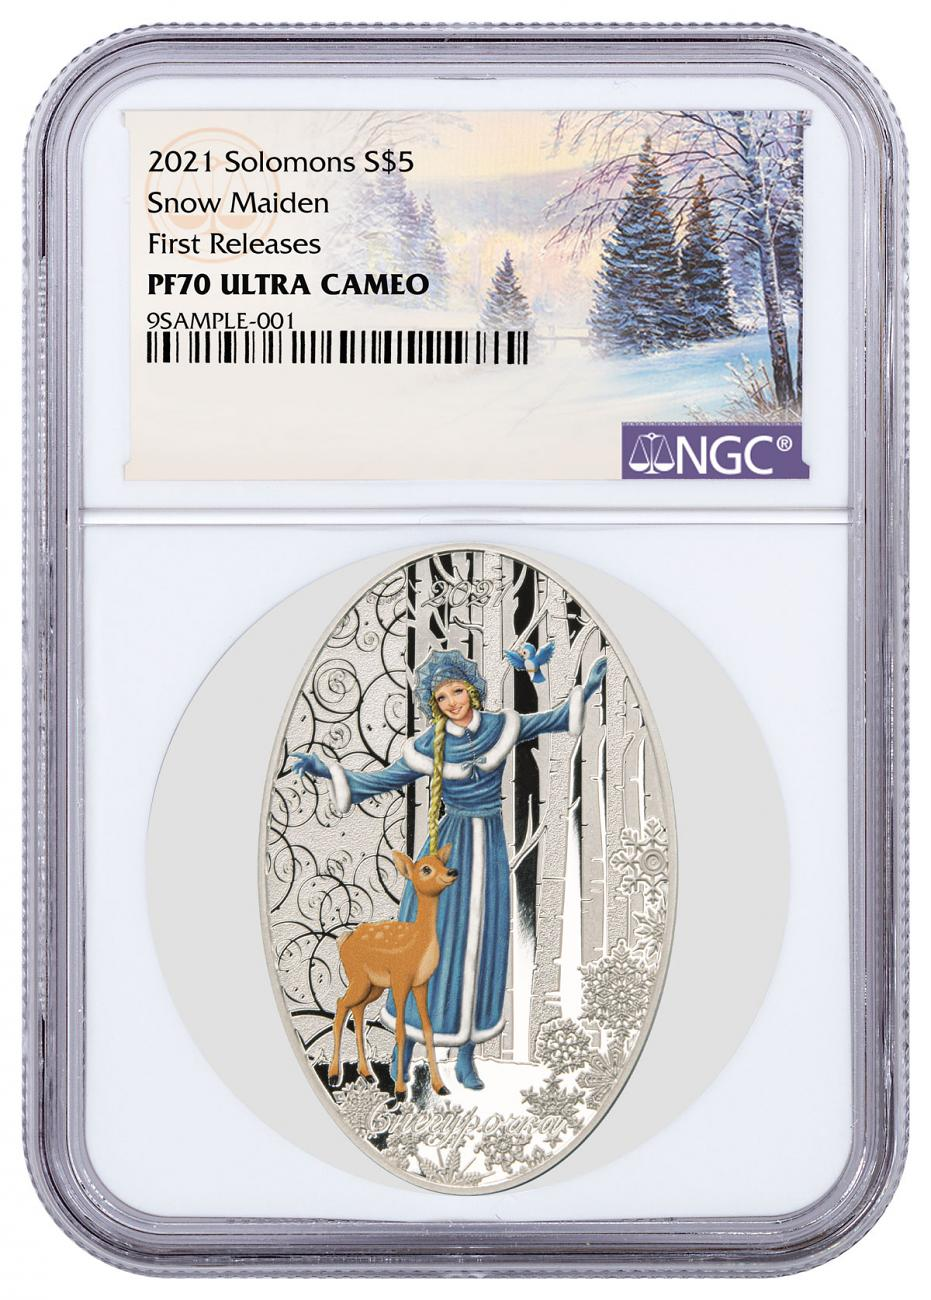 2021 Solomon Islands Snow Maiden Matryoshka Doll 1 oz Silver Colorized Proof $5 Coin NGC PF70 UC FR with Doll Packaging